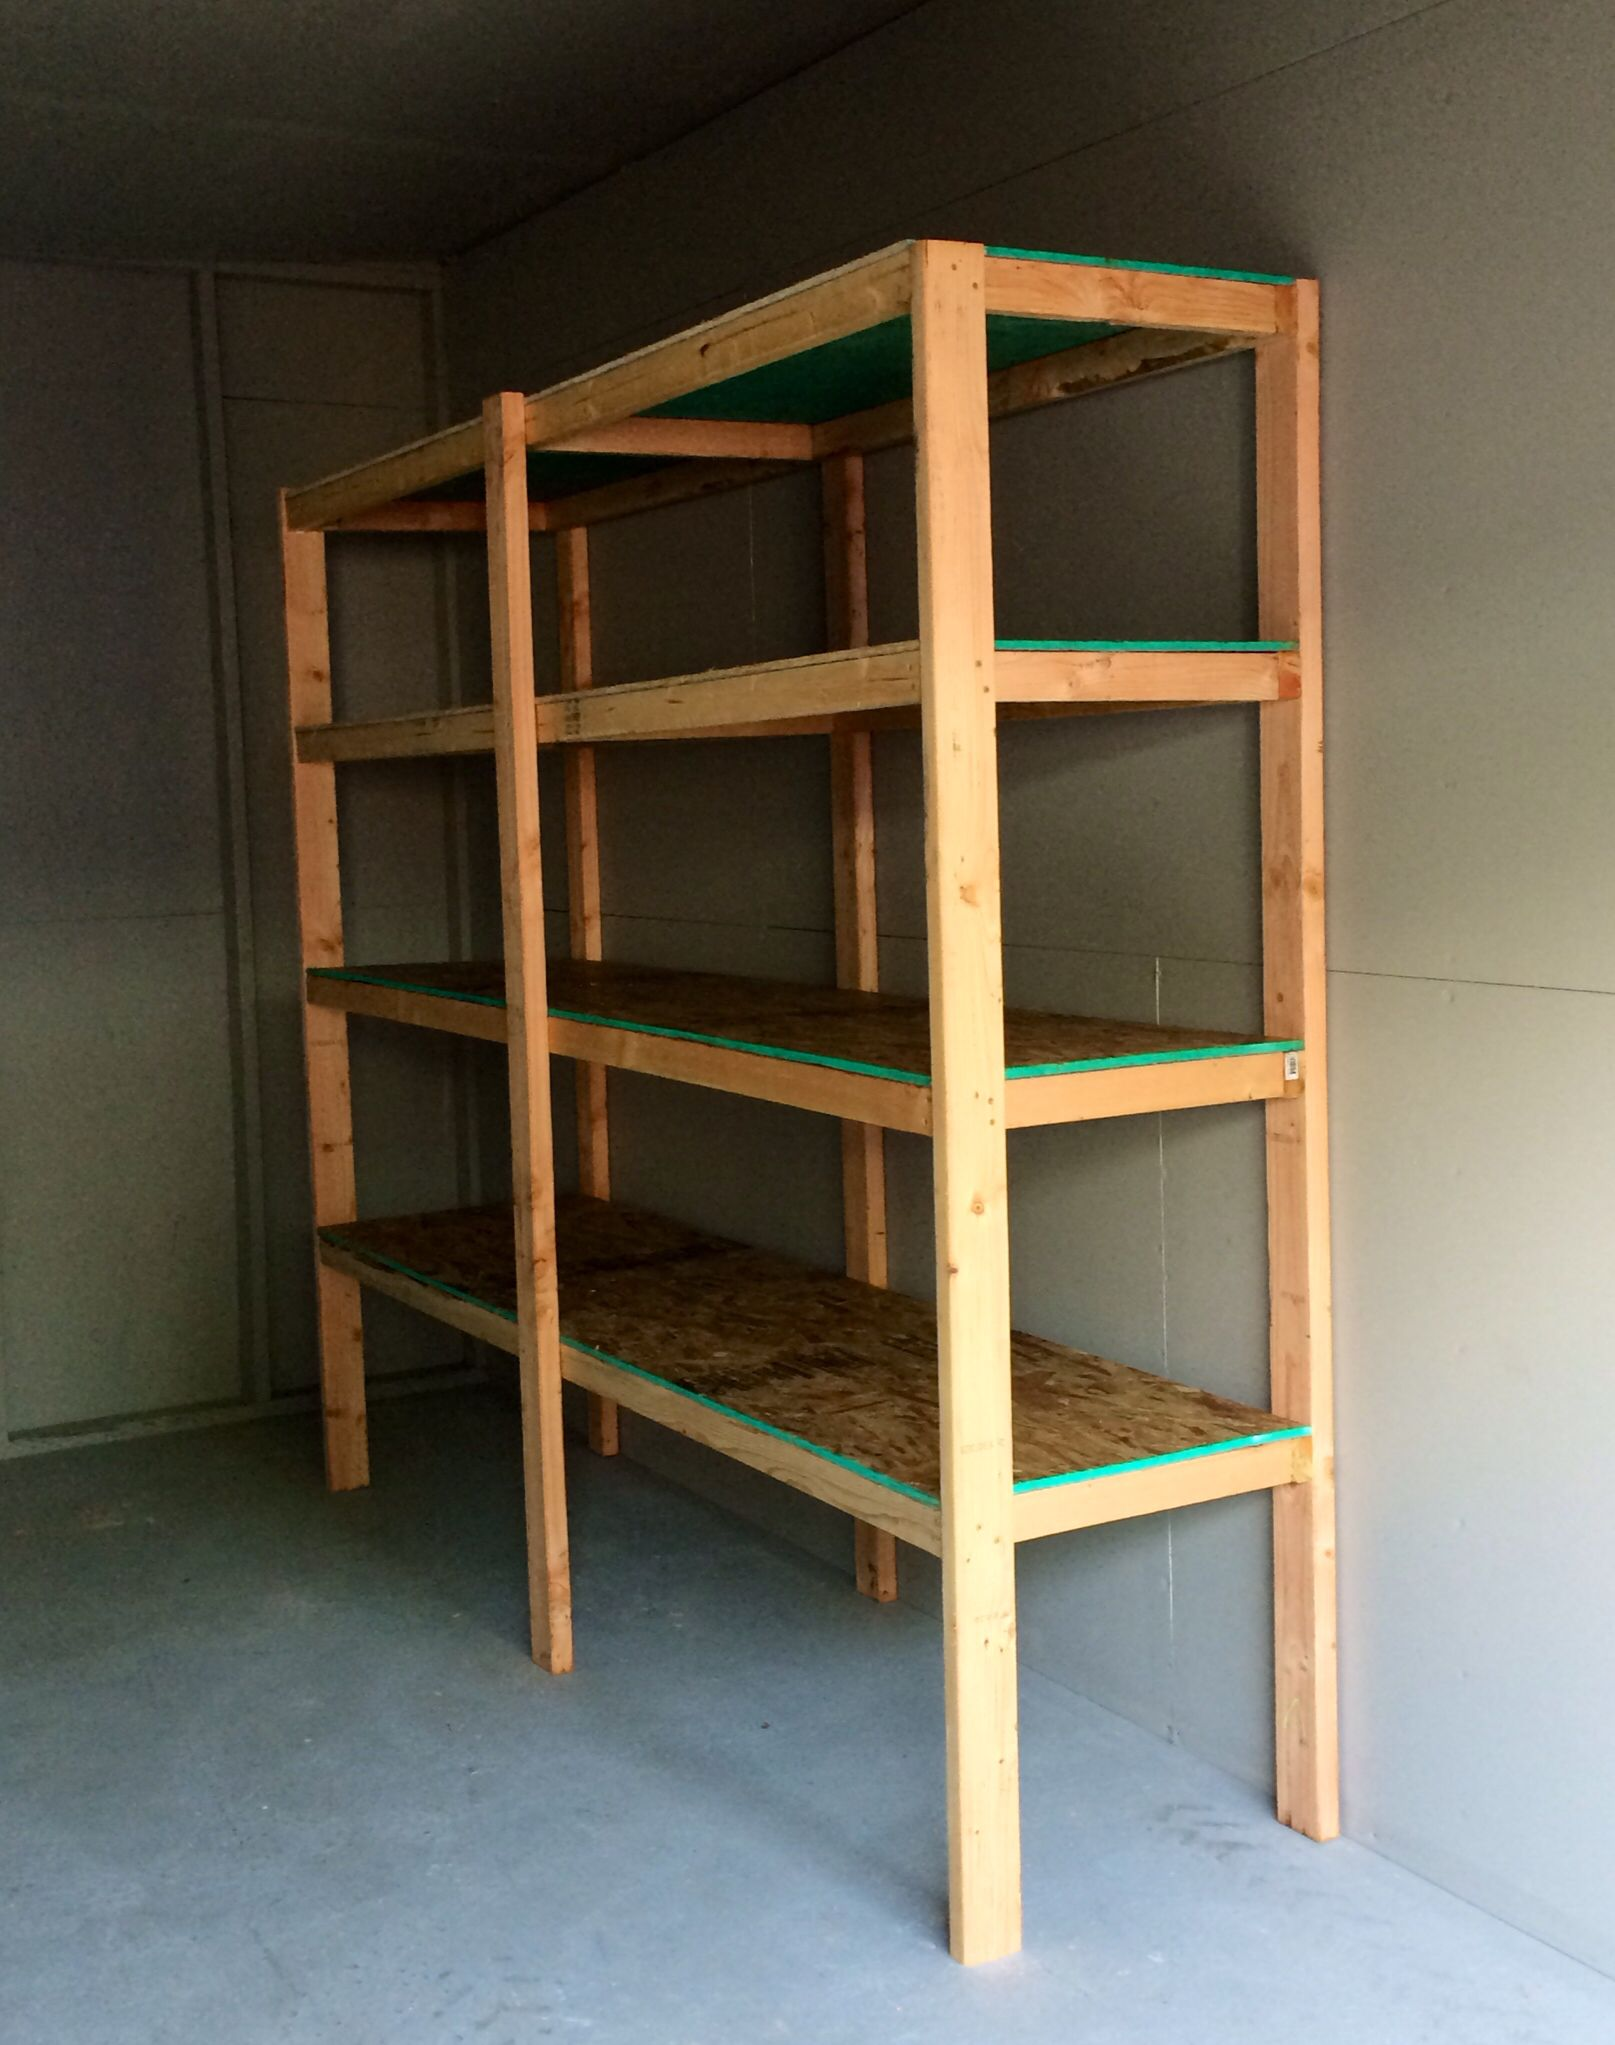 Oops I Made A Shelf Large Shelving Unit For Storage With 4 2 X8 Shelves Approx Cost 70 2 Sheets Osb 6 Rangements Et Organisation Rangement Organisation